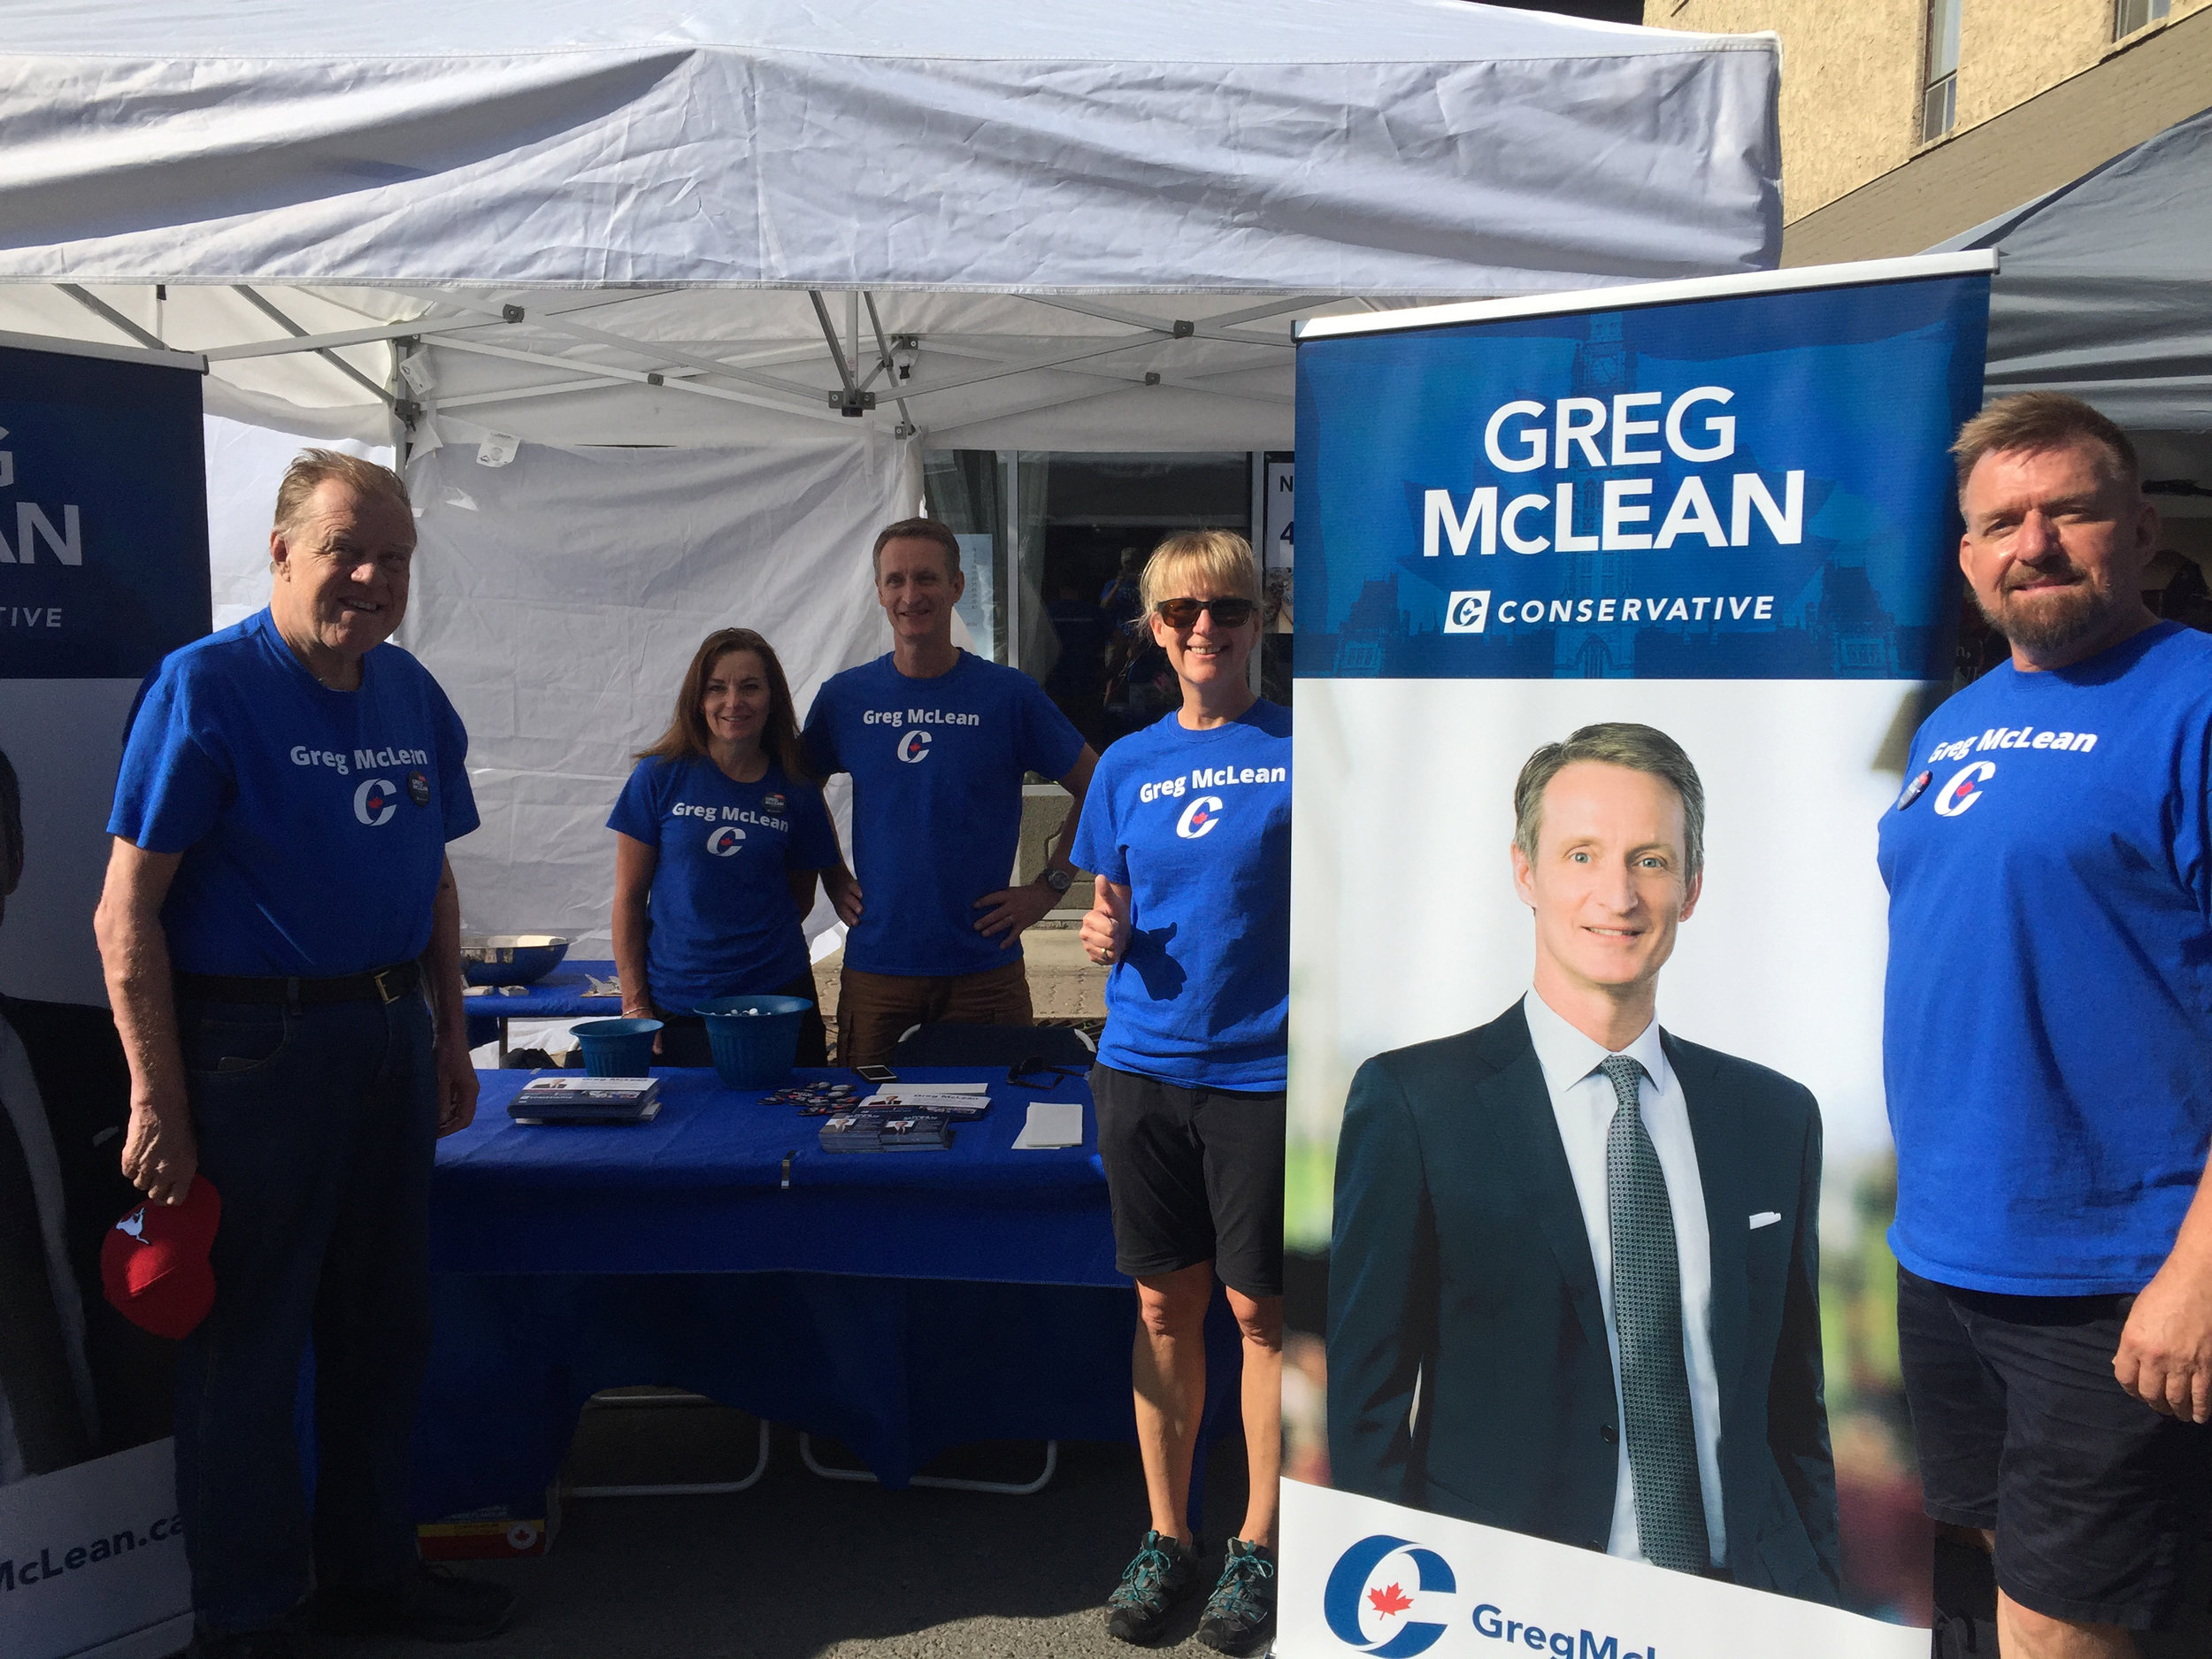 We are all set up and ready to greet people at the Inglewood SunFest today (Saturday August 3) - 9th Ave SE between 11 and 14 Streets.